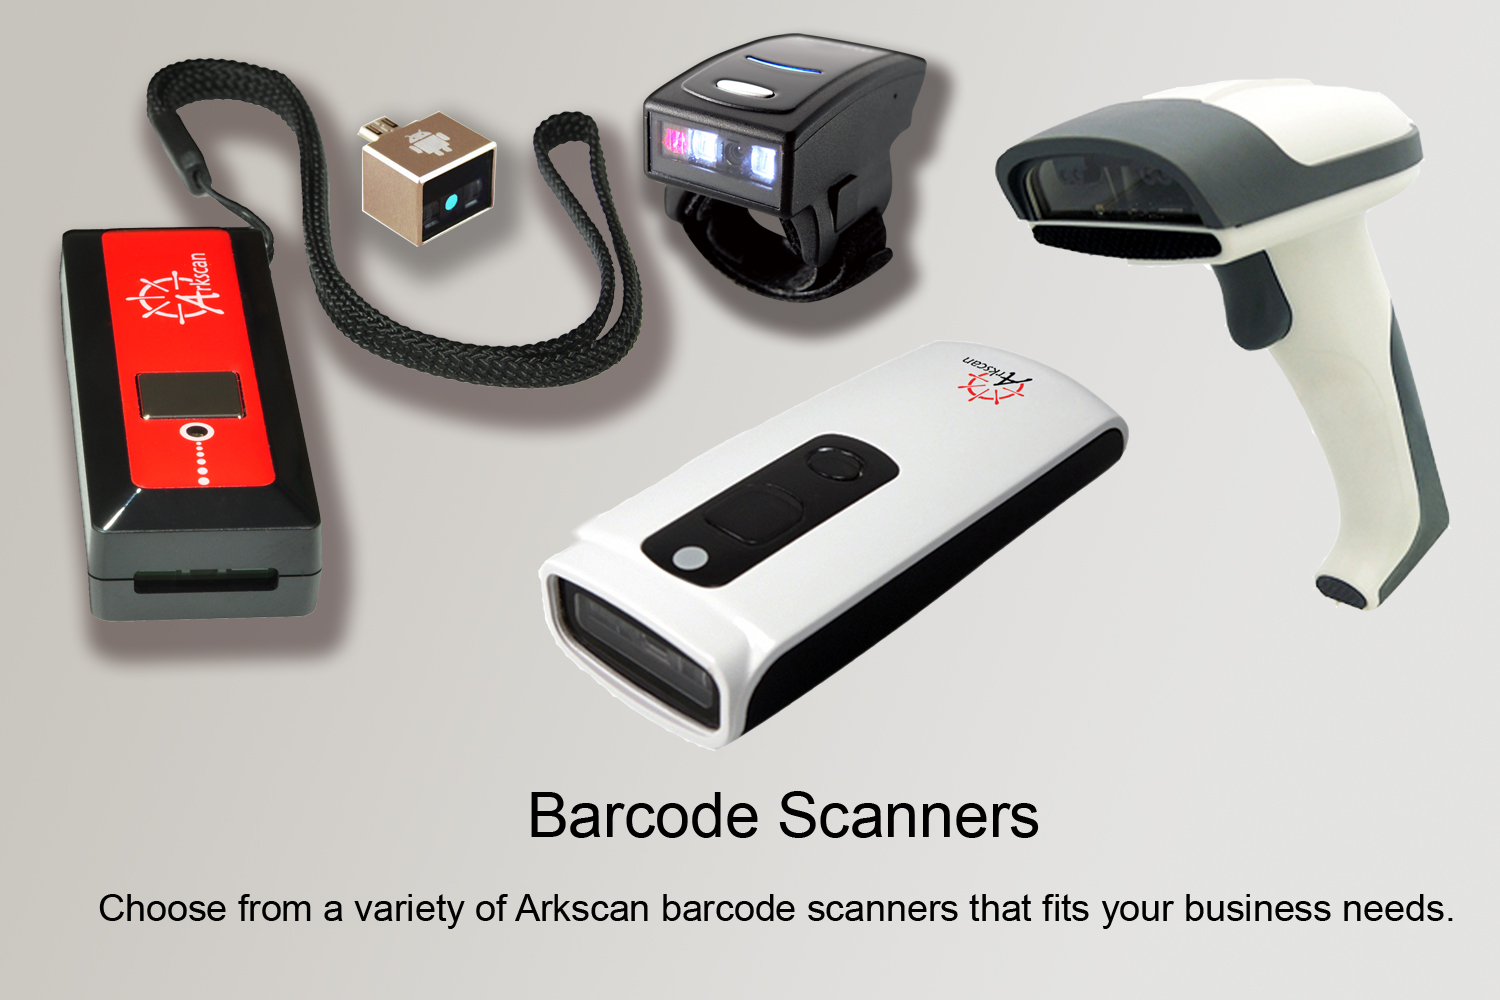 Variety Barcode Scanner that fits your business needs